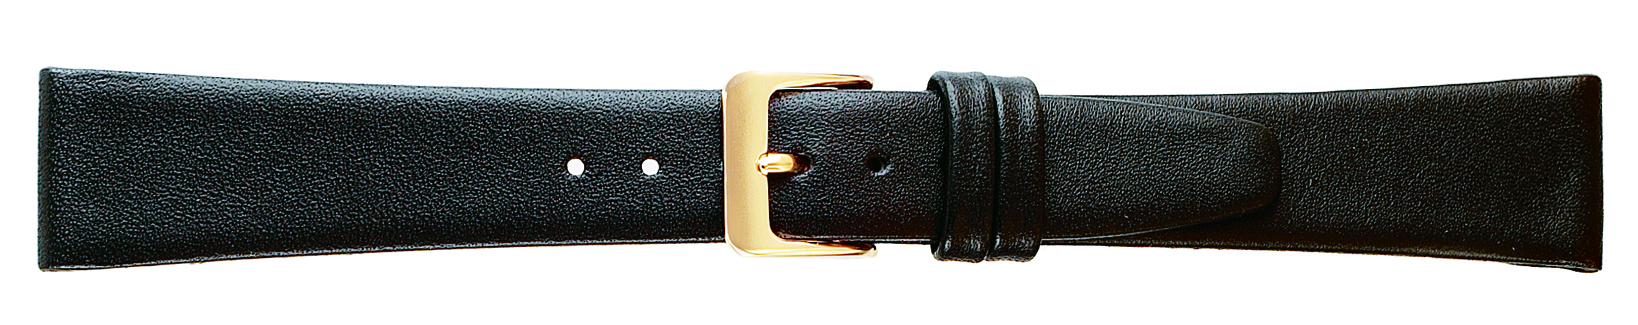 20MM Leather Band Black Smooth Calf-0